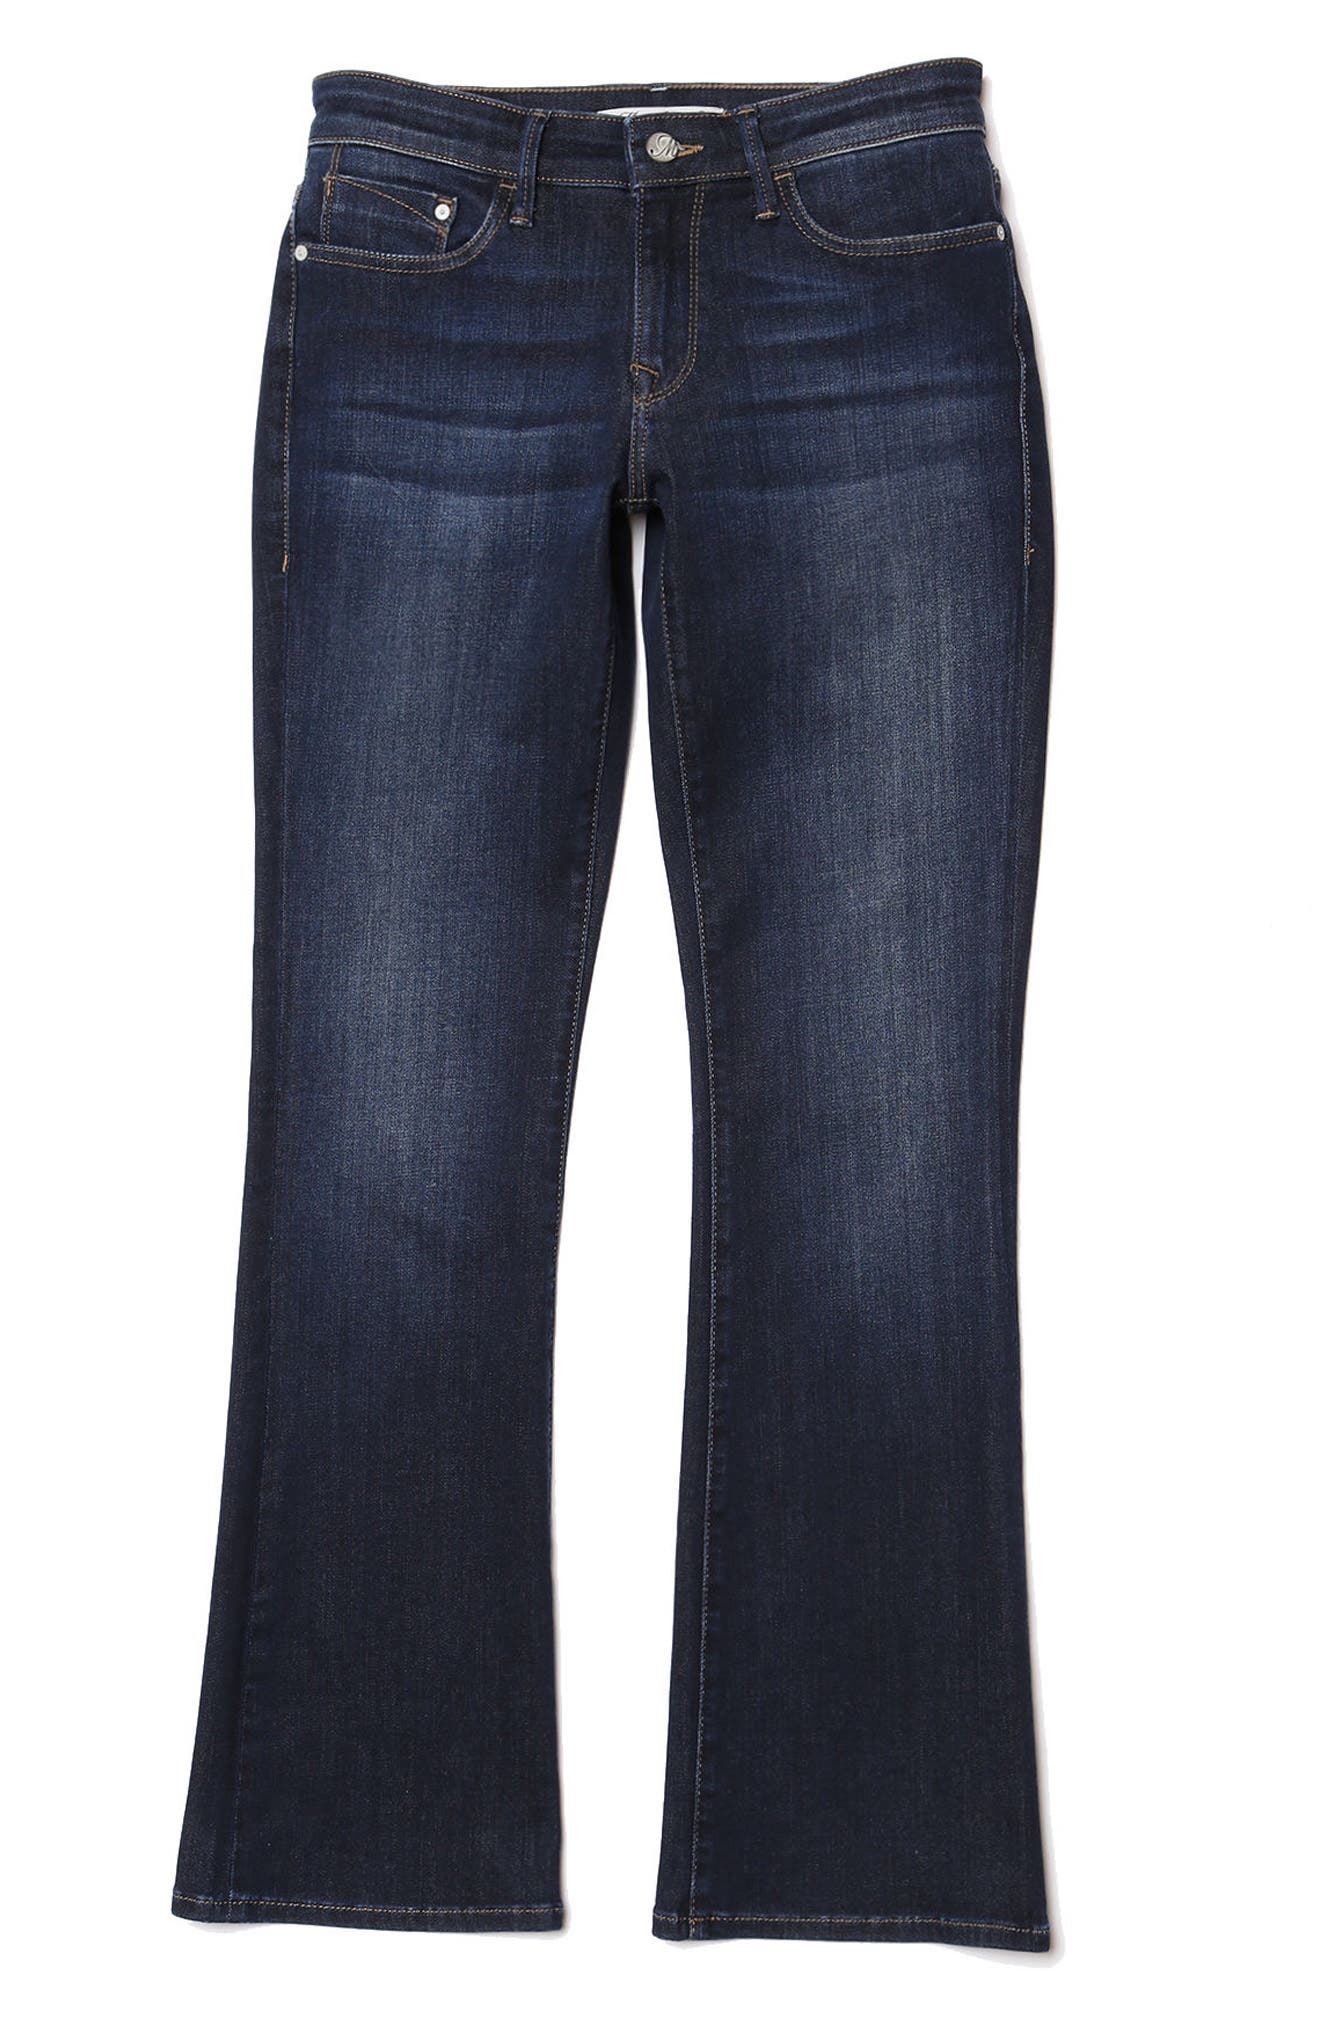 Molly Classic Bootcuts Jeans,                             Alternate thumbnail 5, color,                             Deep Super Soft